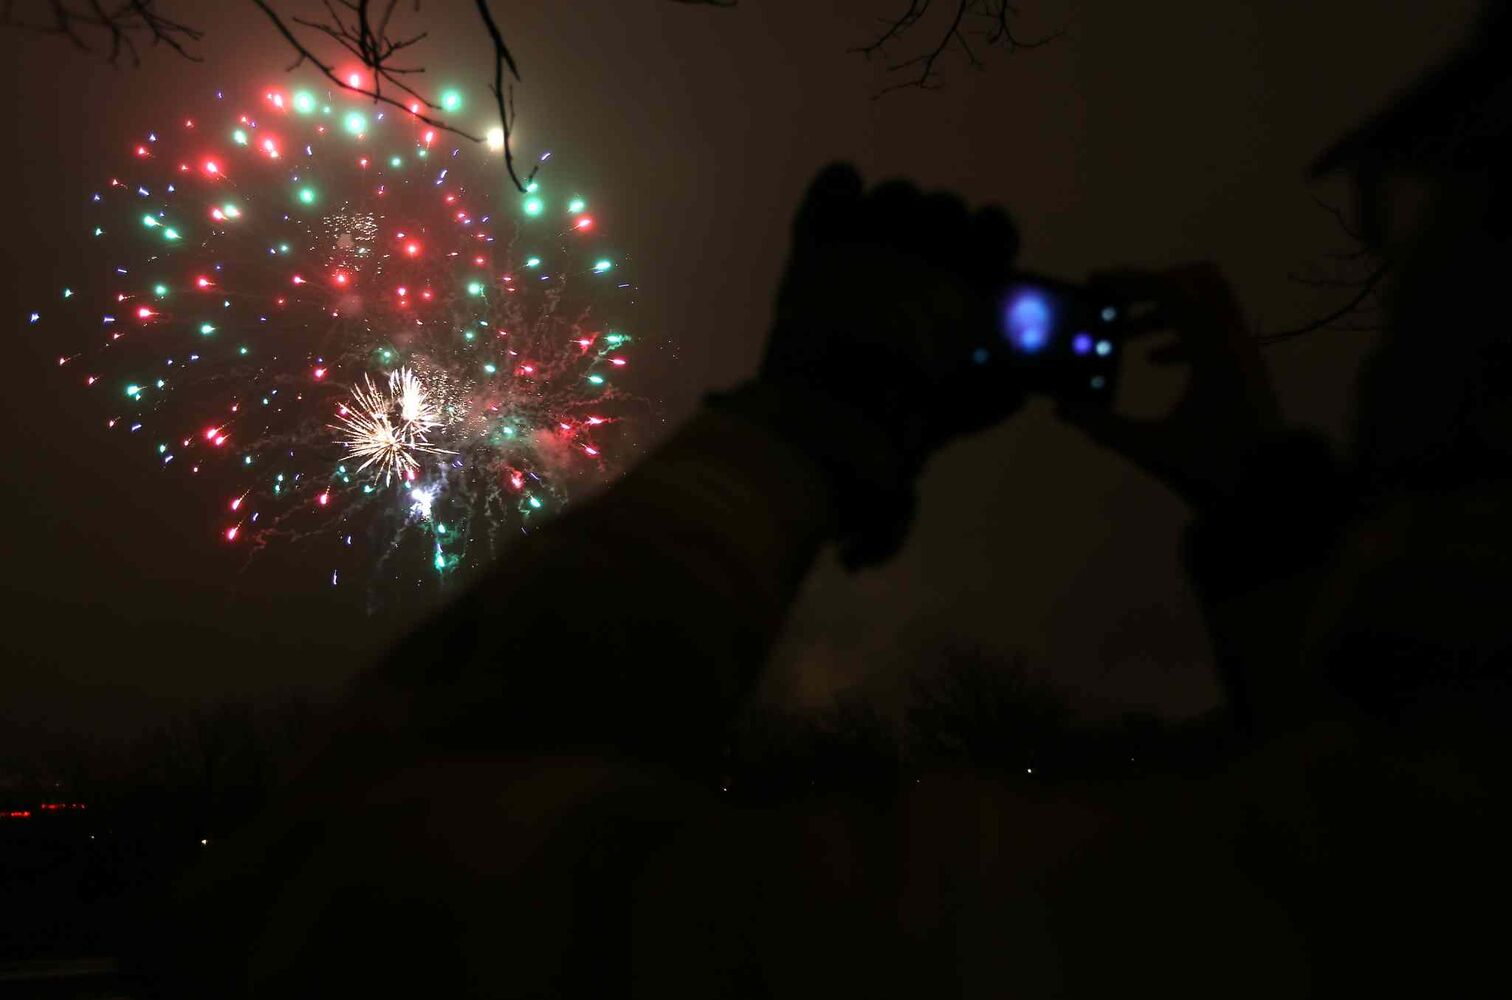 A spectator takes a photo of fireworks set off at The Forks following the parade.